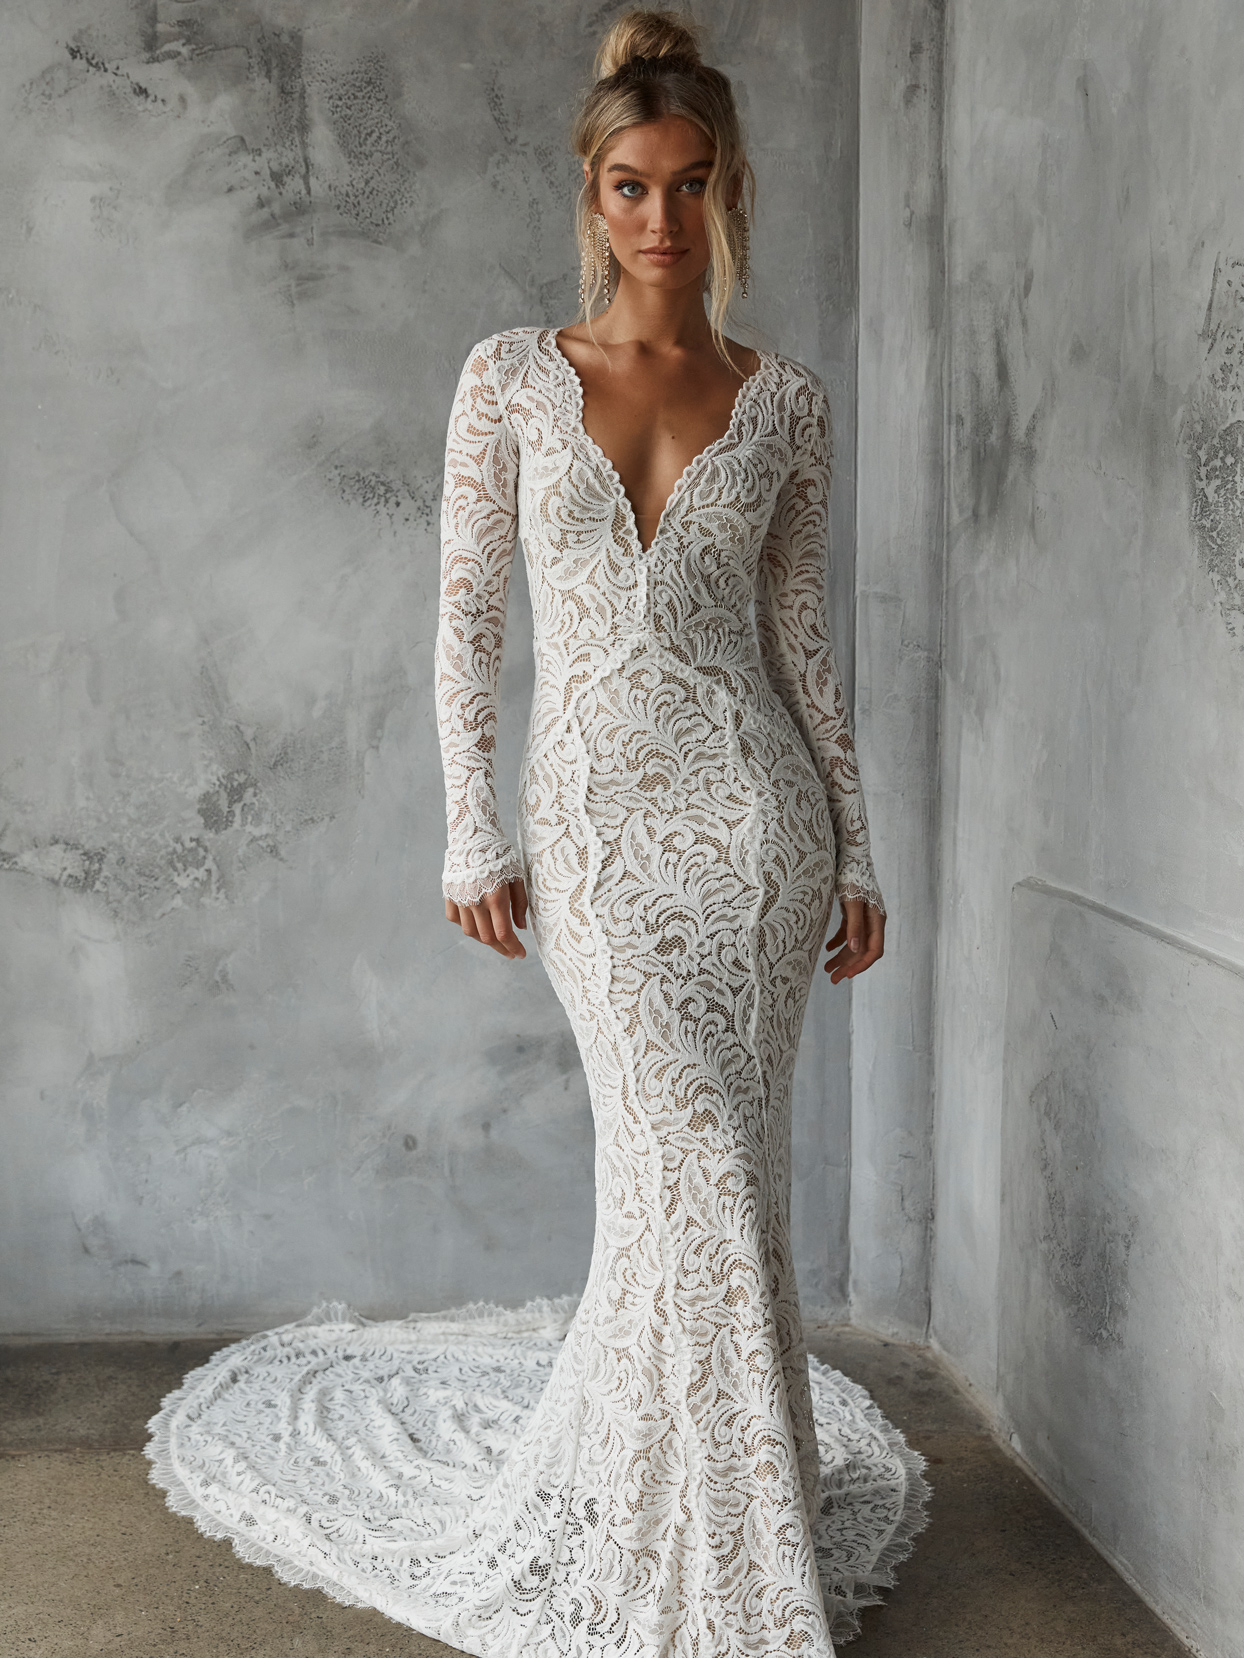 Grace Loves Lace lace long sleeve form fitting wedding dress fall 2022